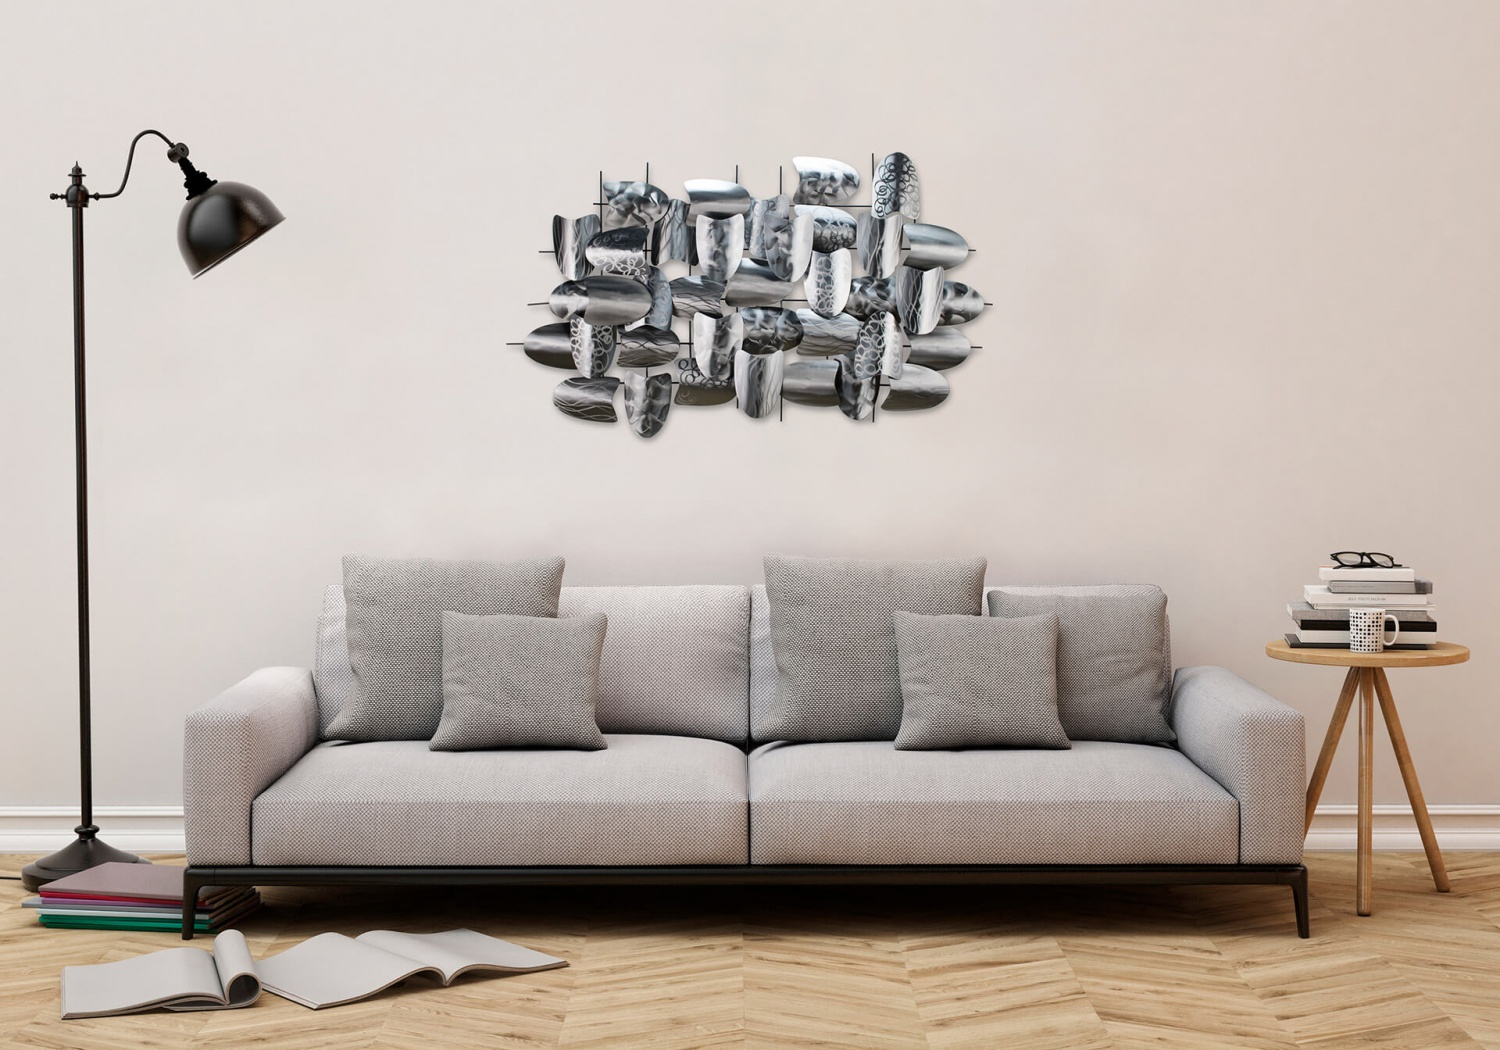 sculpture murale en m tal argent gris abstrait plaque arrondies 39 128x70x8cm ebay. Black Bedroom Furniture Sets. Home Design Ideas